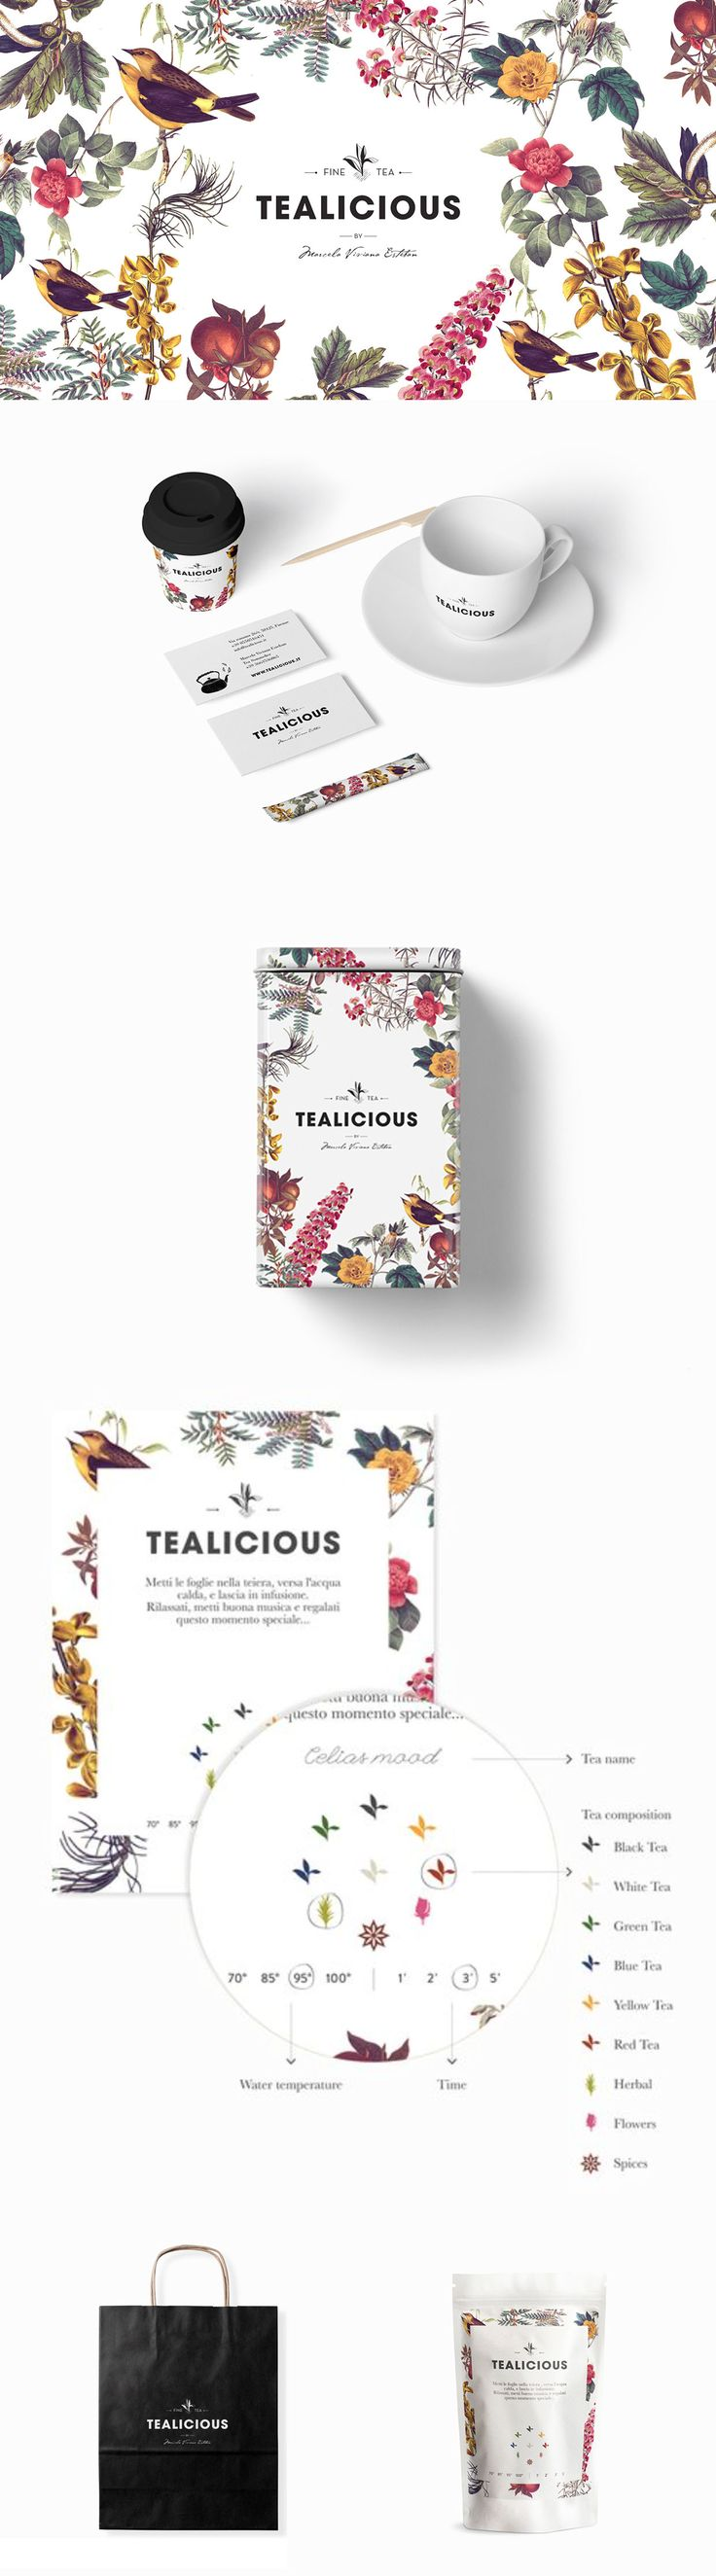 Tealicious merchandise and take-out supplies are framed around a luscious botanical garden. /